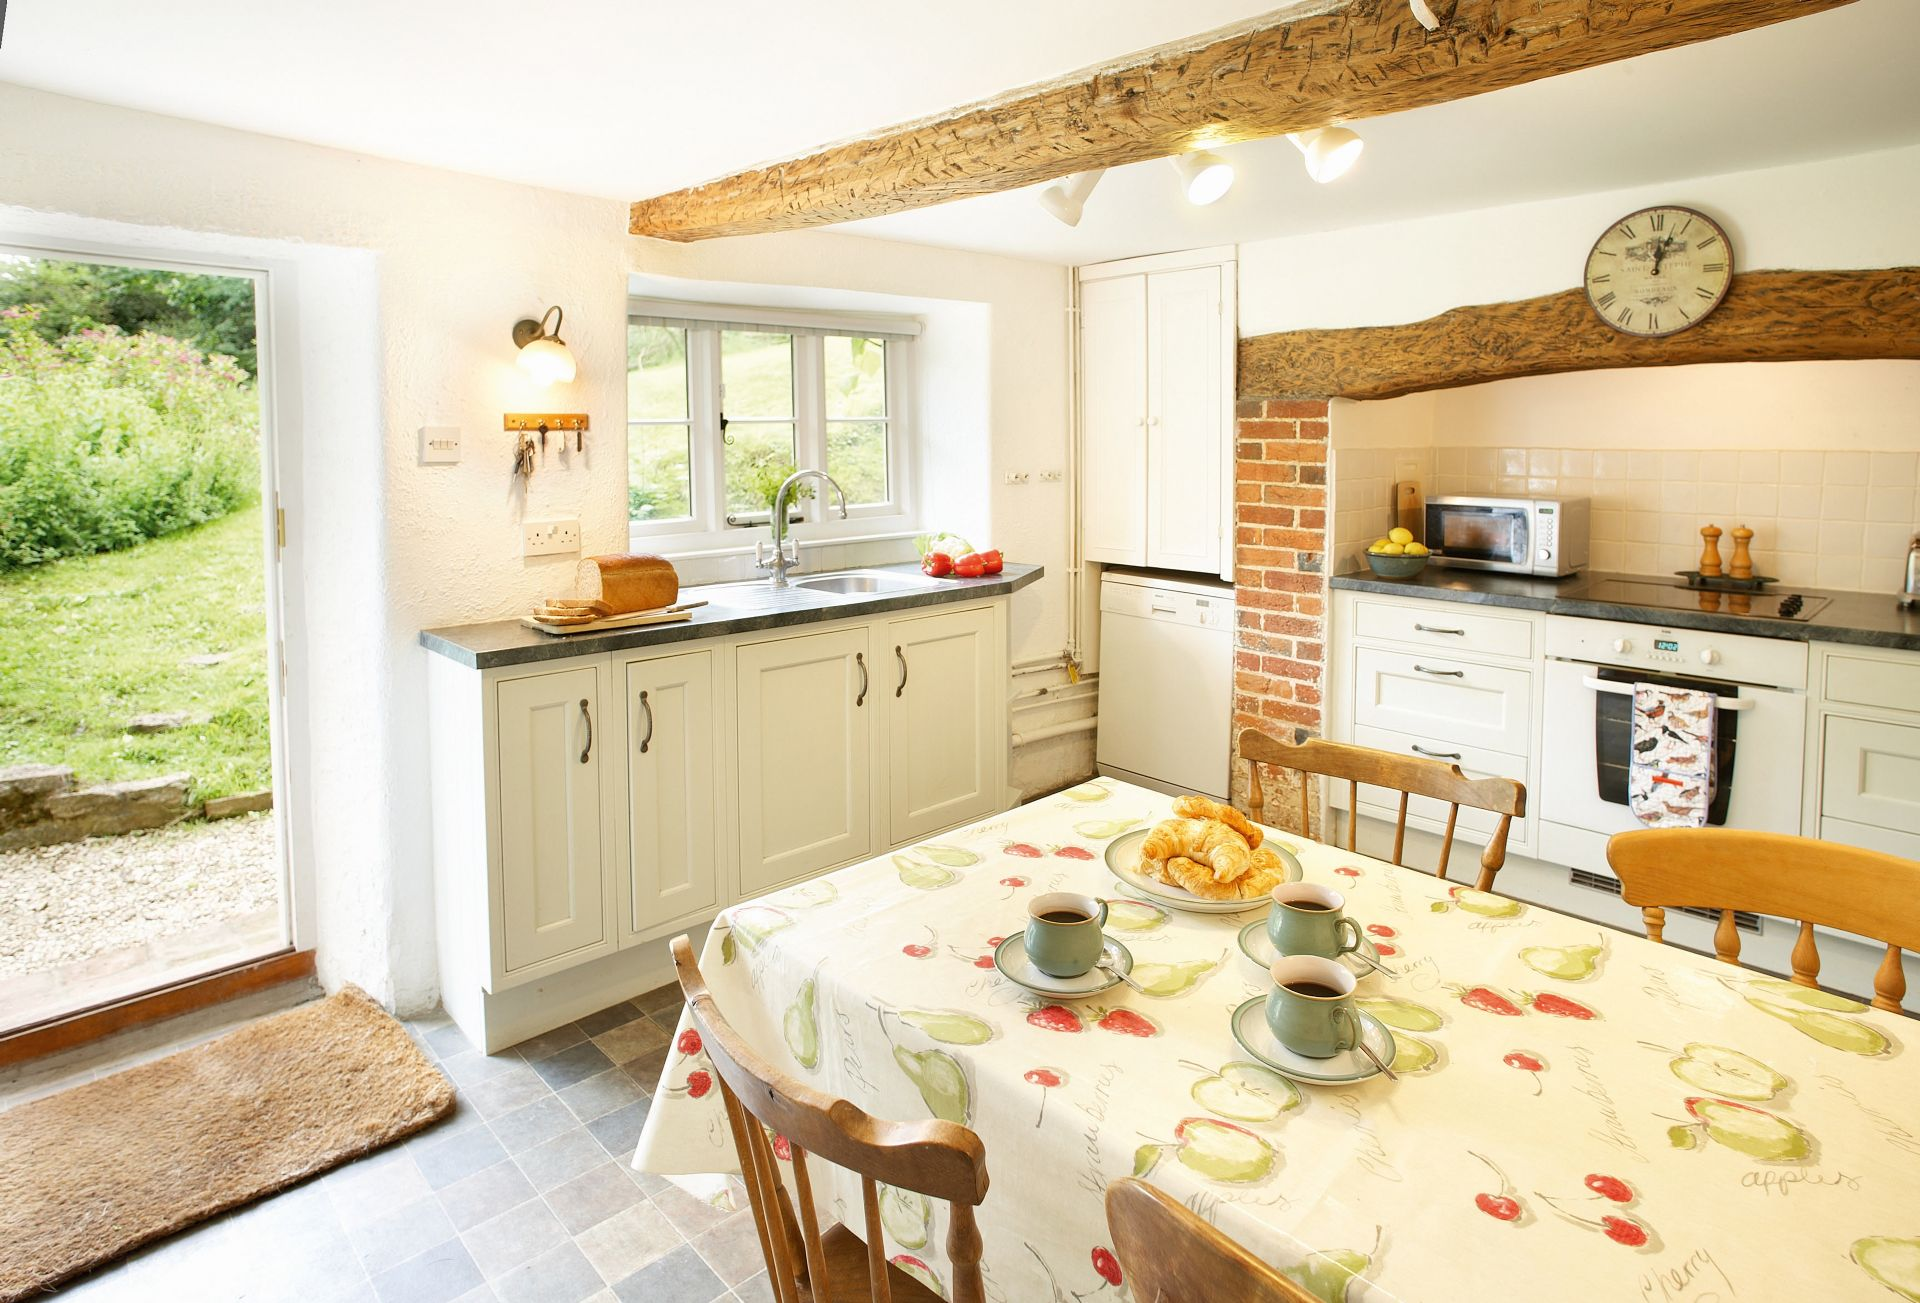 Magna Cottage is located in Shaftesbury and surrounding villages